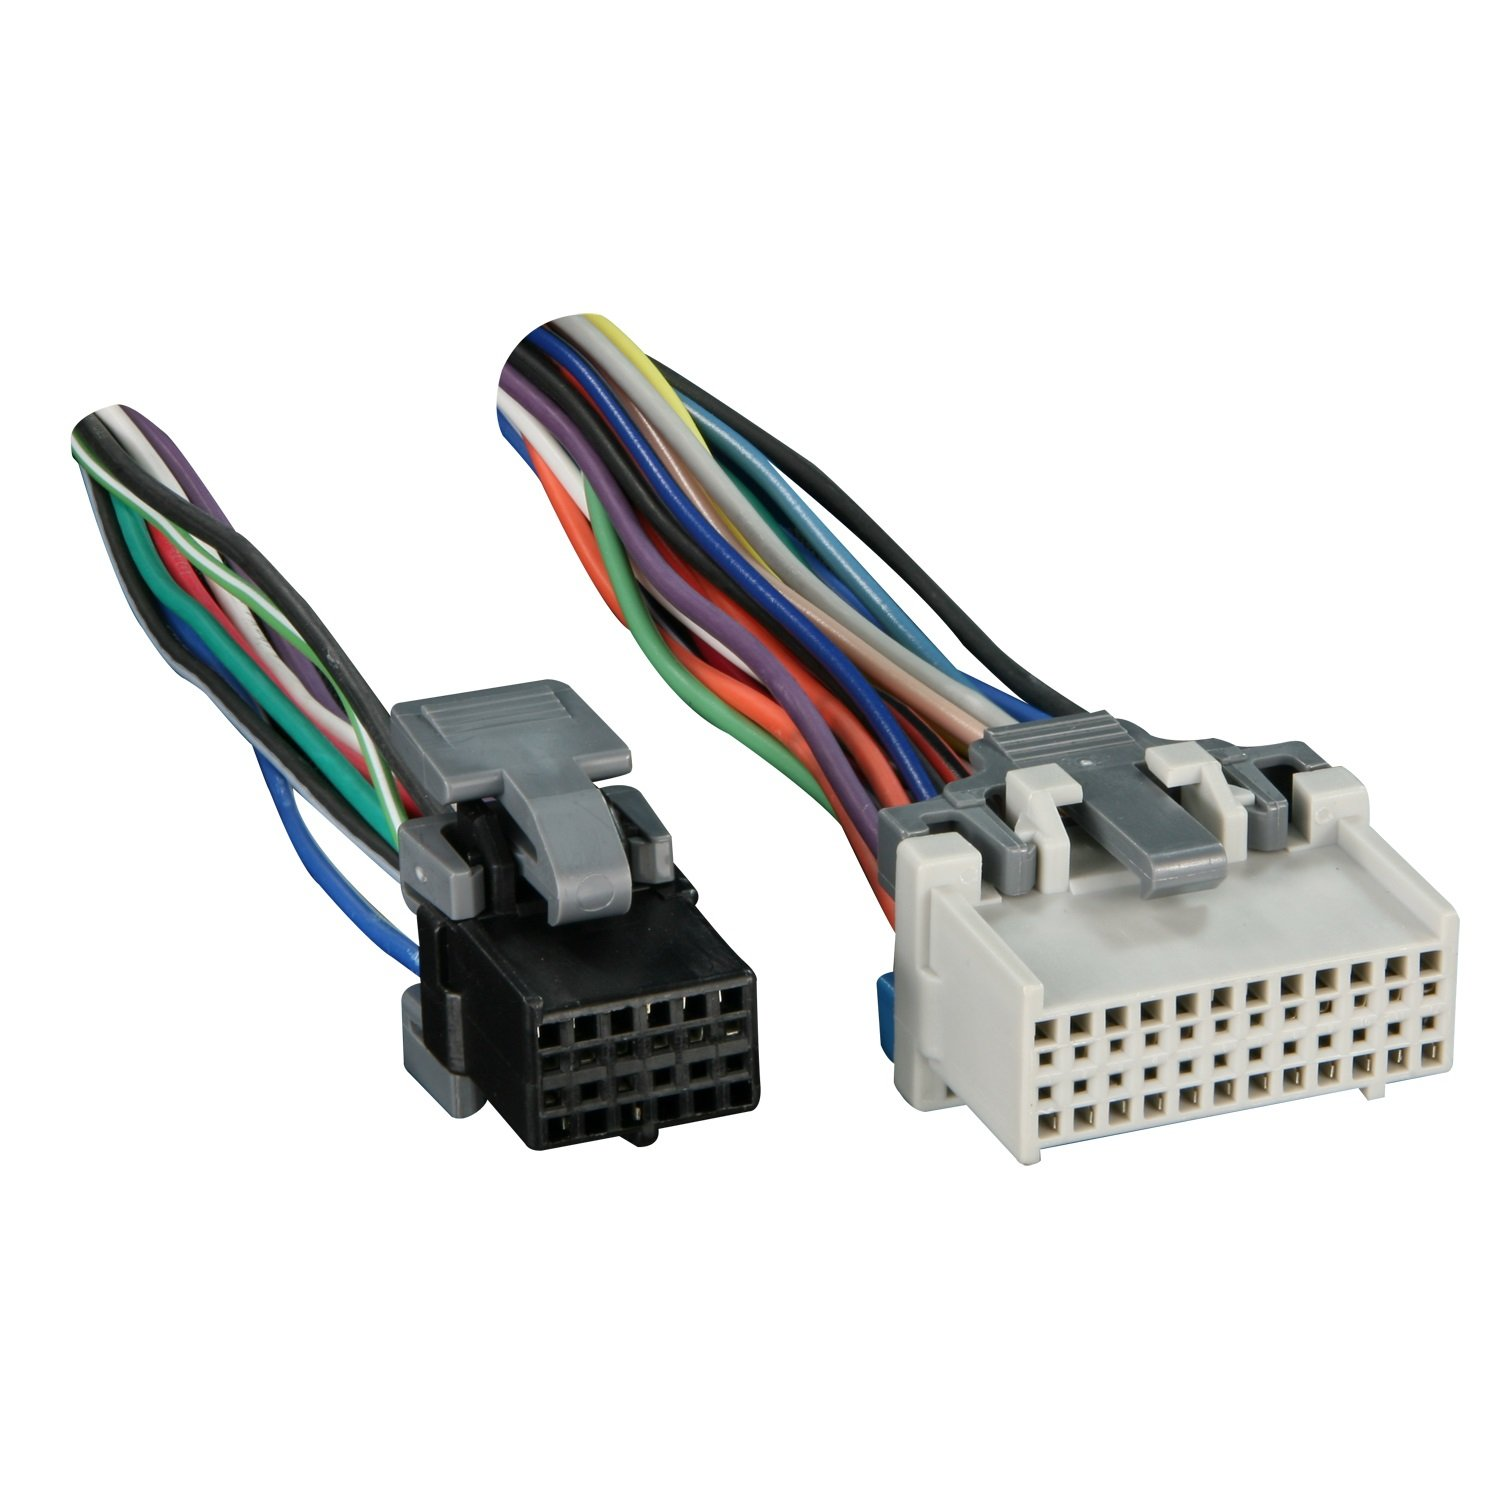 711log4bdML._SL1500_ amazon com metra turbowires 71 2003 1 wiring harness car electronics  at webbmarketing.co